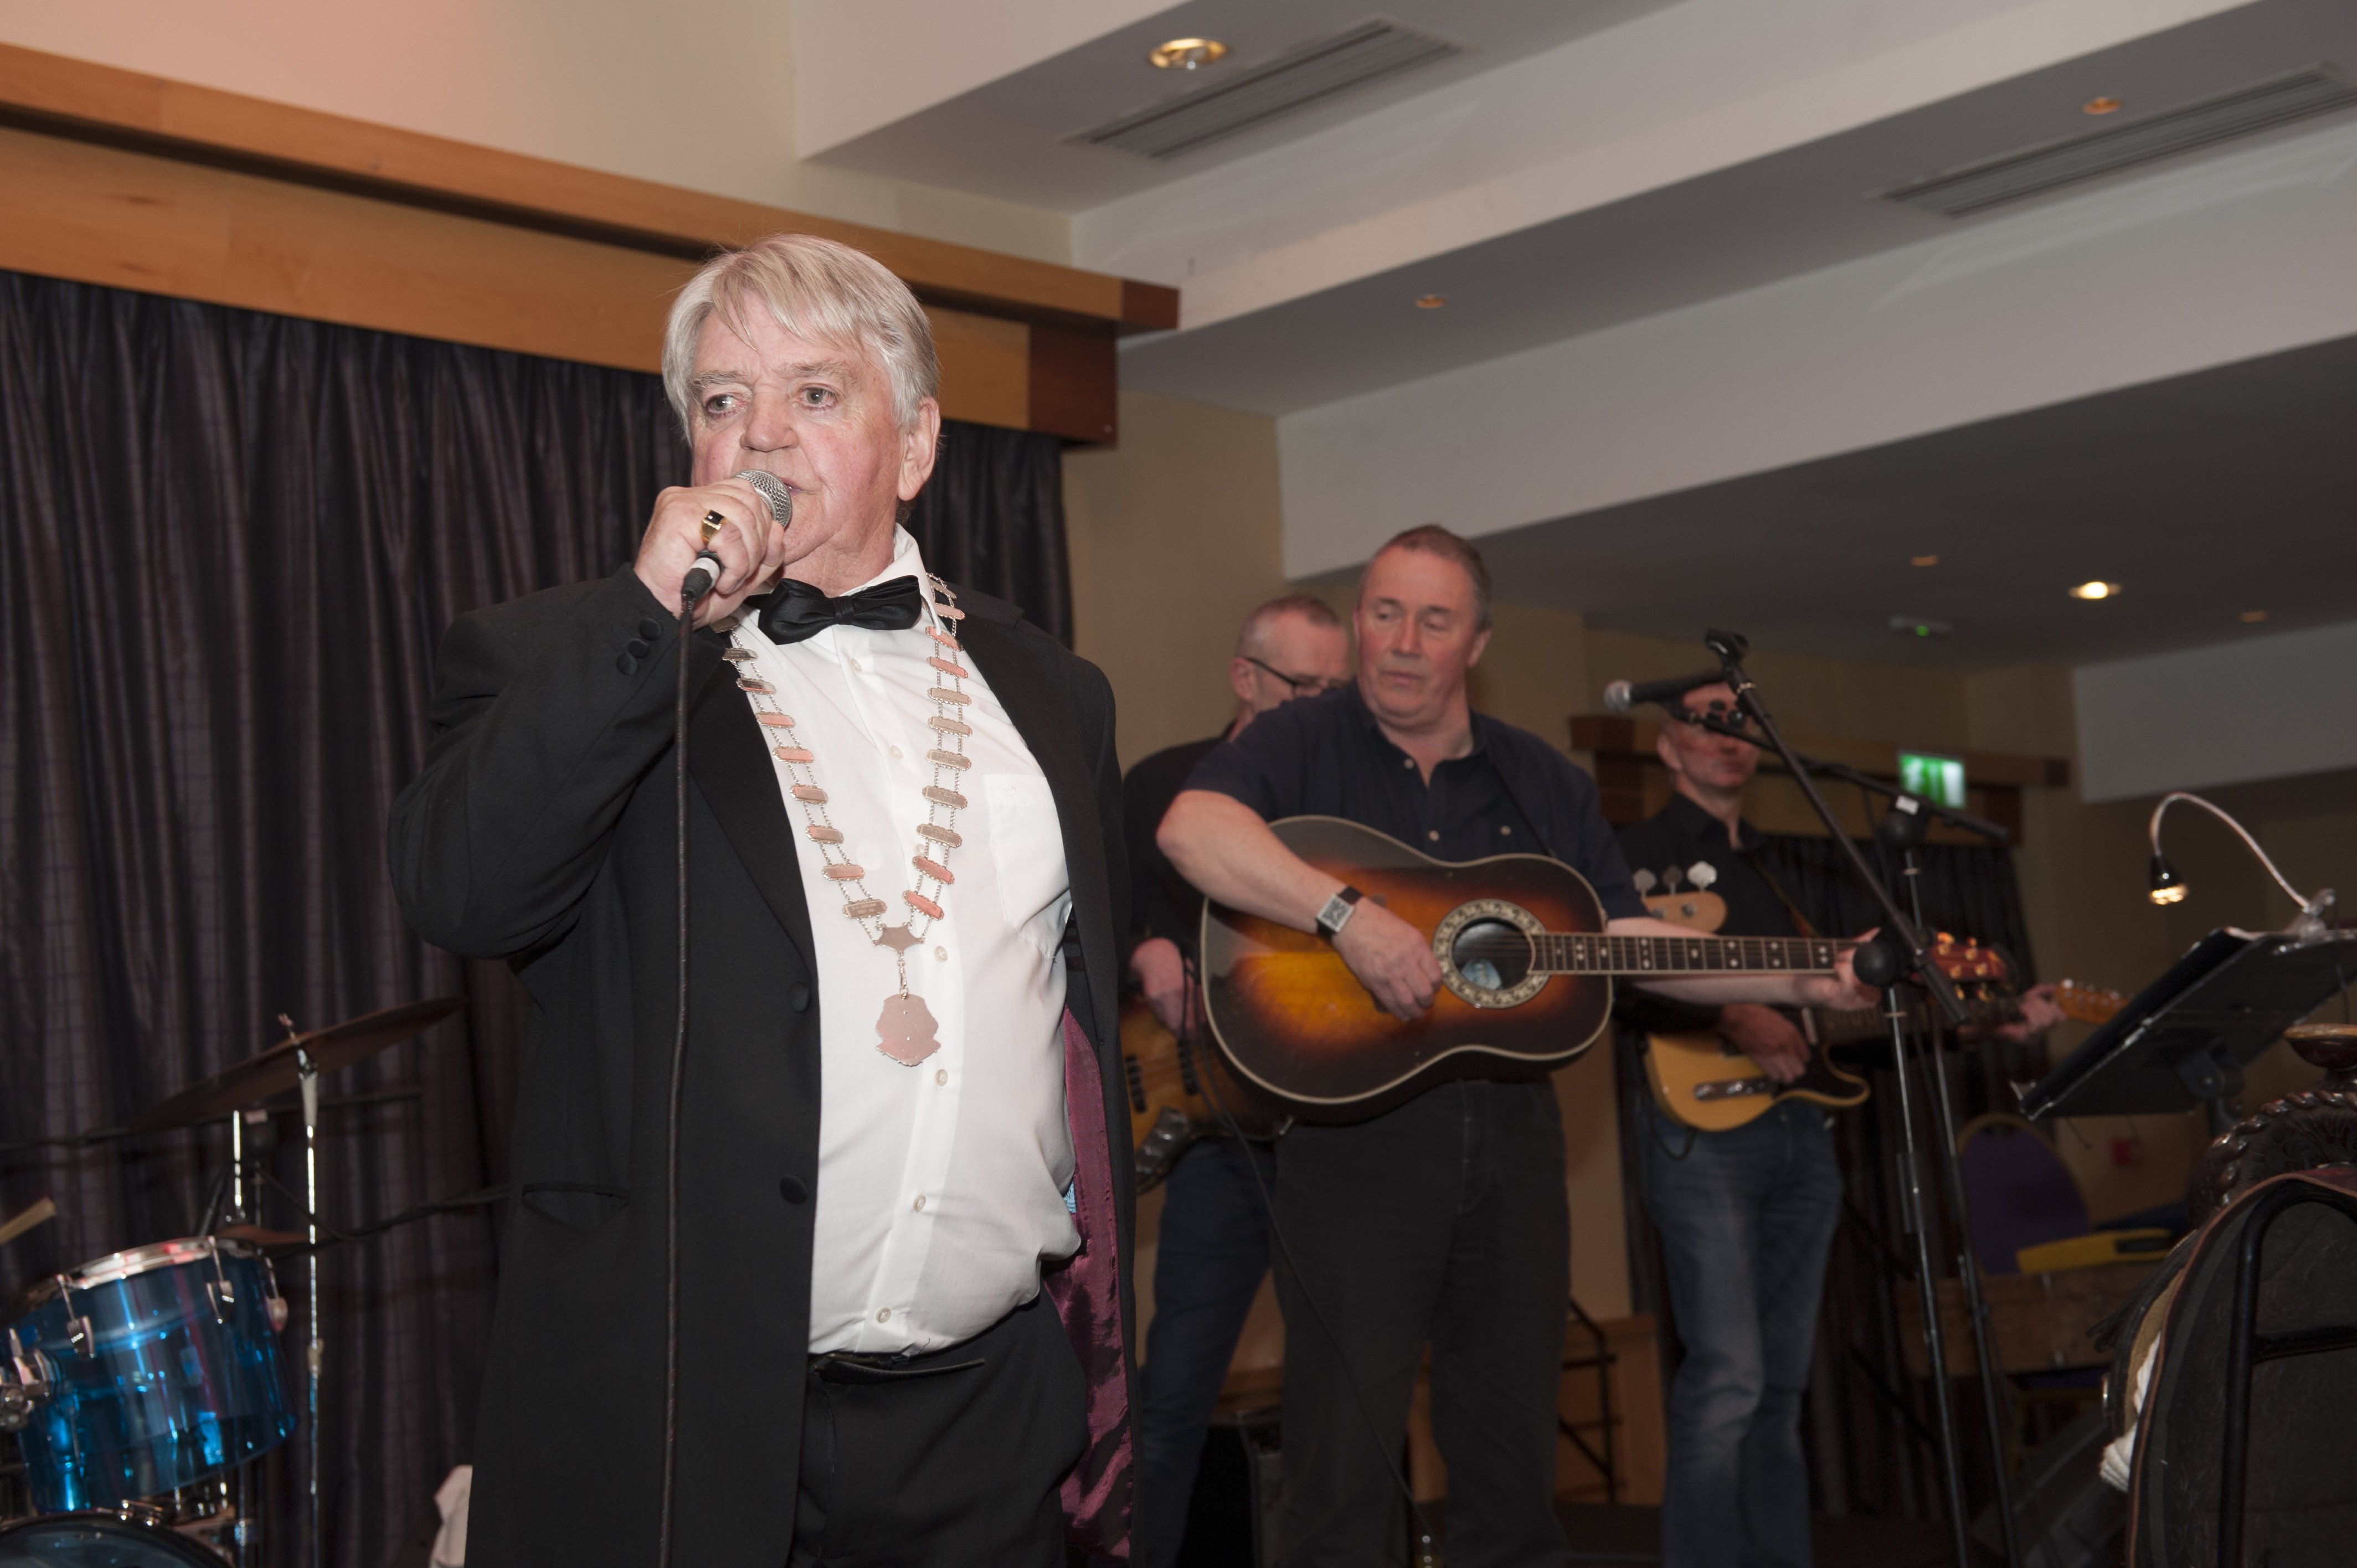 President of Monaghan Rotary Club, Pat Deery, singing at Pat The President's Country Music & Western Night for the club. ©Rory Geary/The Northern Standard